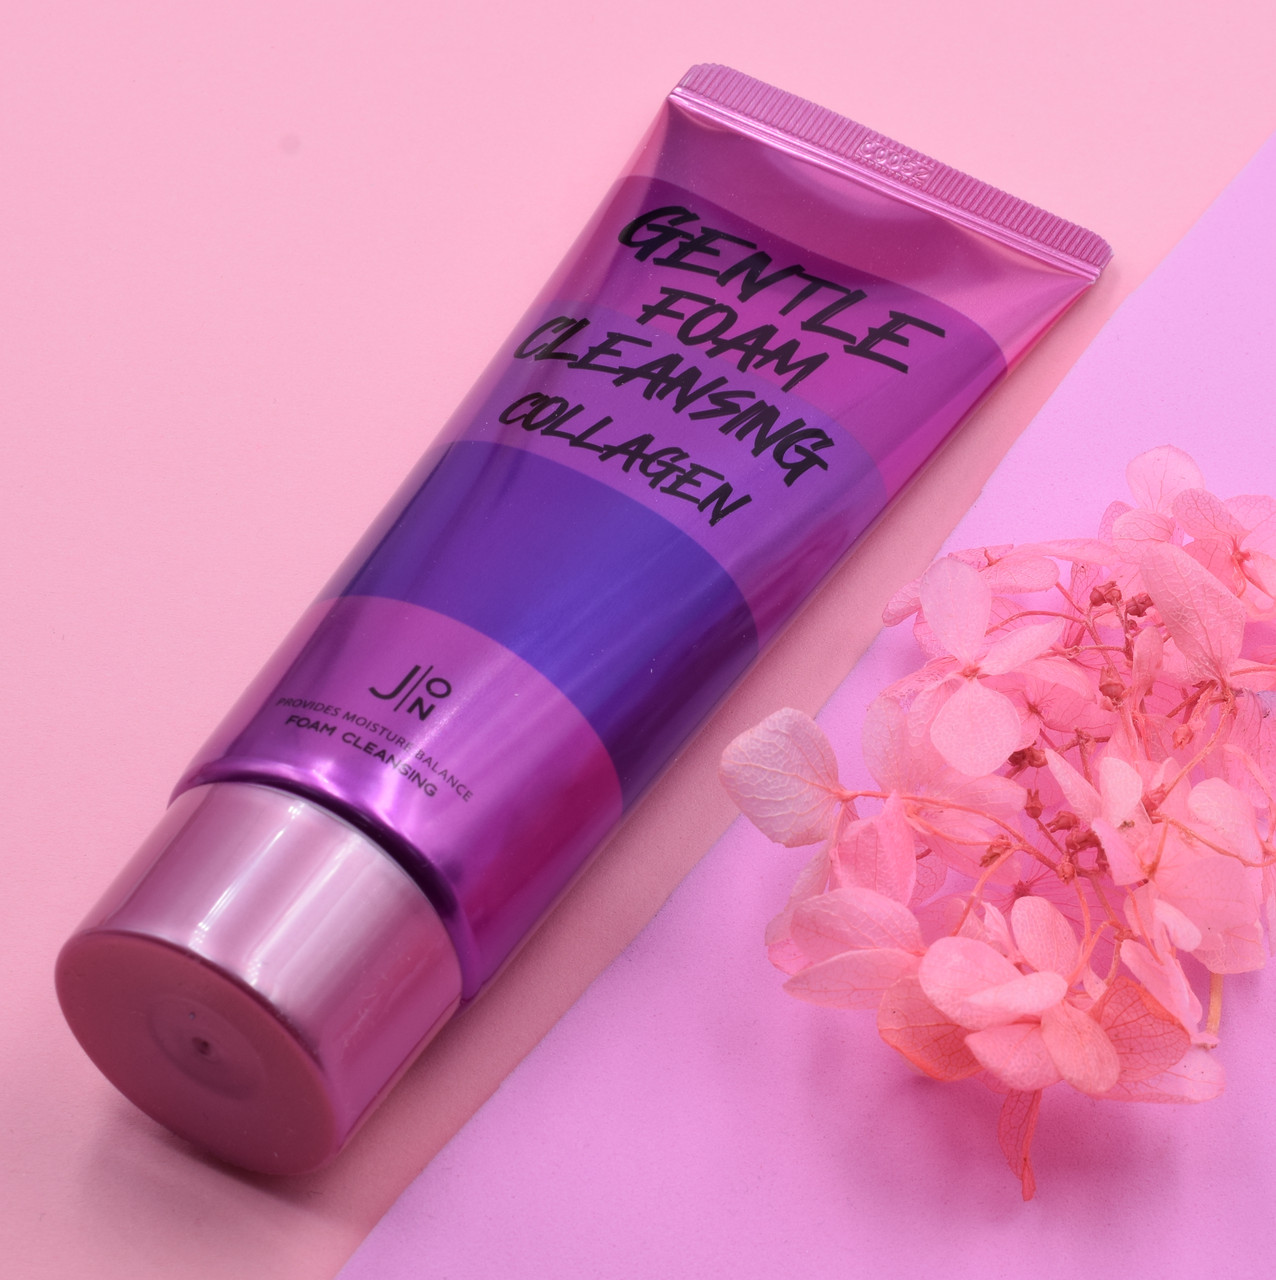 Пенка для умывания J:ON с коллагеном Gentle Foam Cleansing Collagen